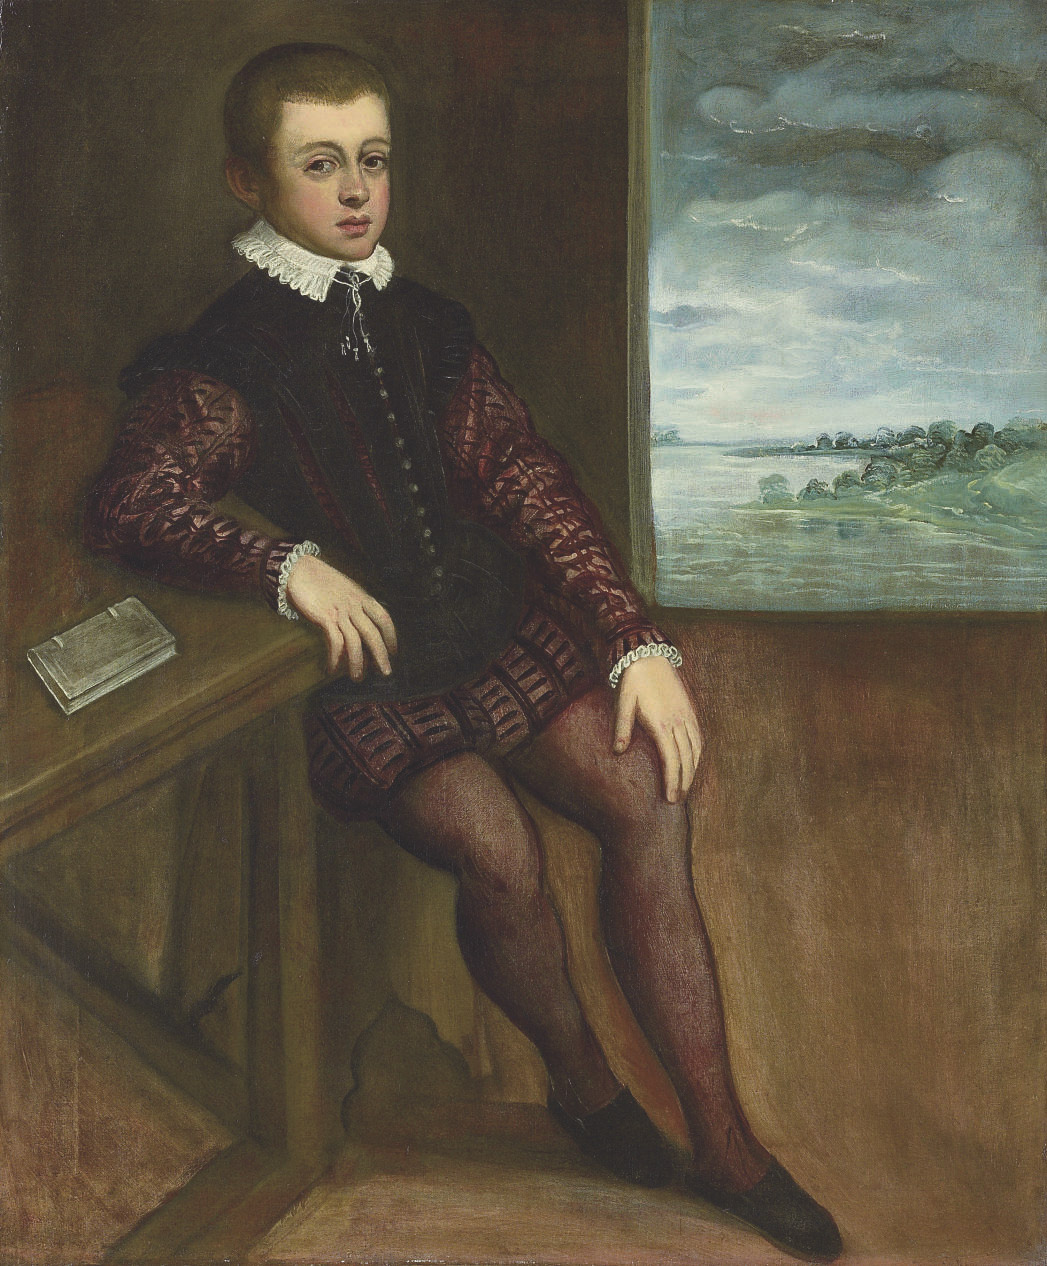 Portrait of a boy, full-length, seated by a window